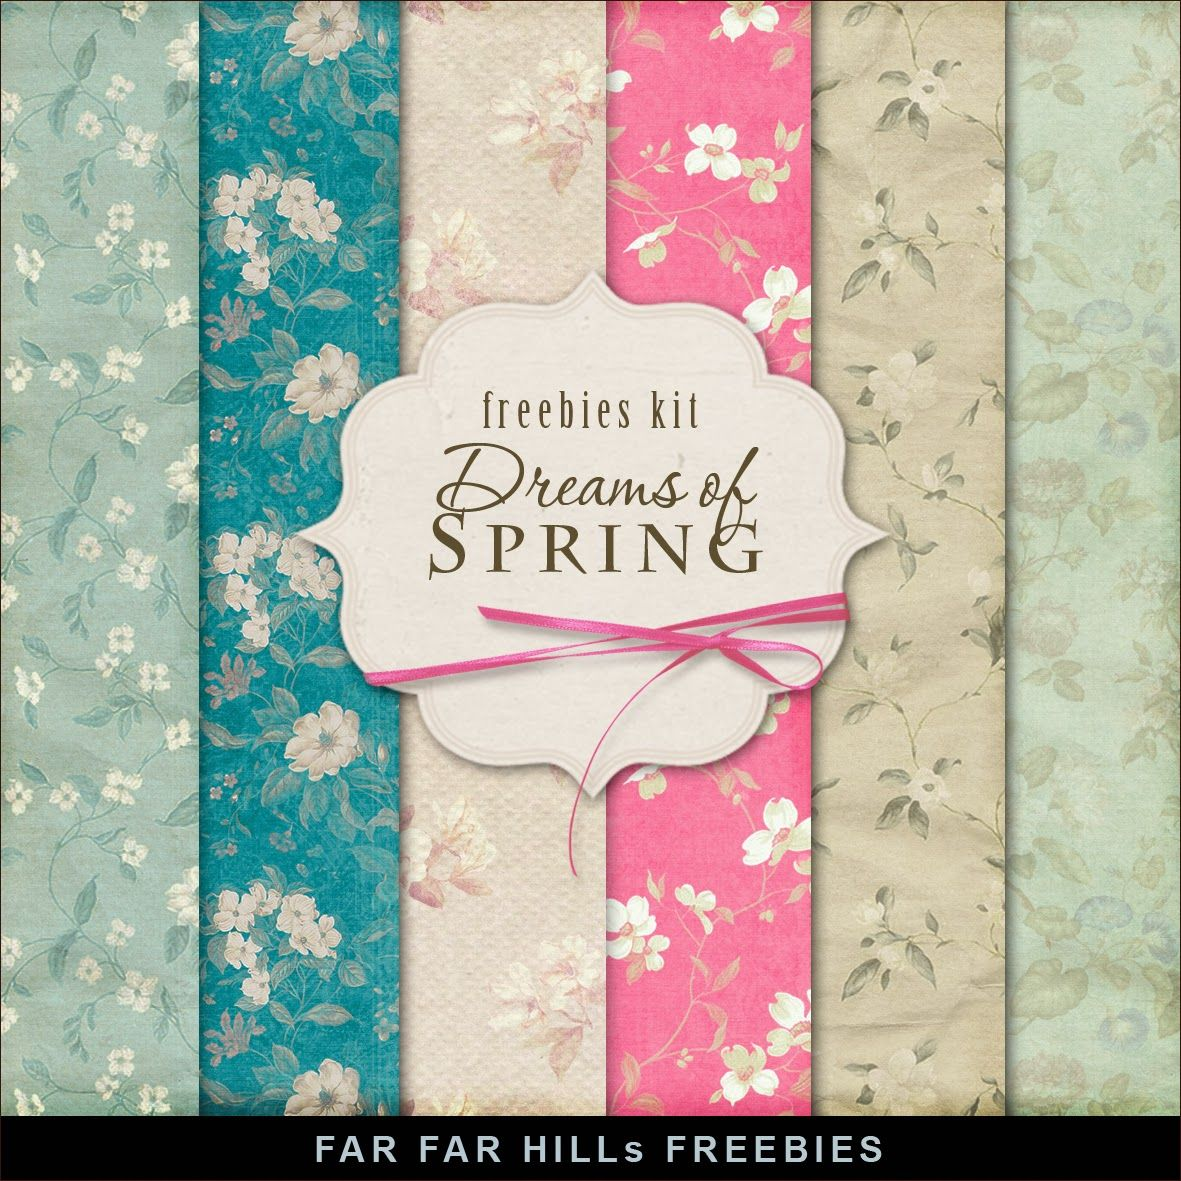 New Freebies Kit of Backgrounds - Dreams of Spring